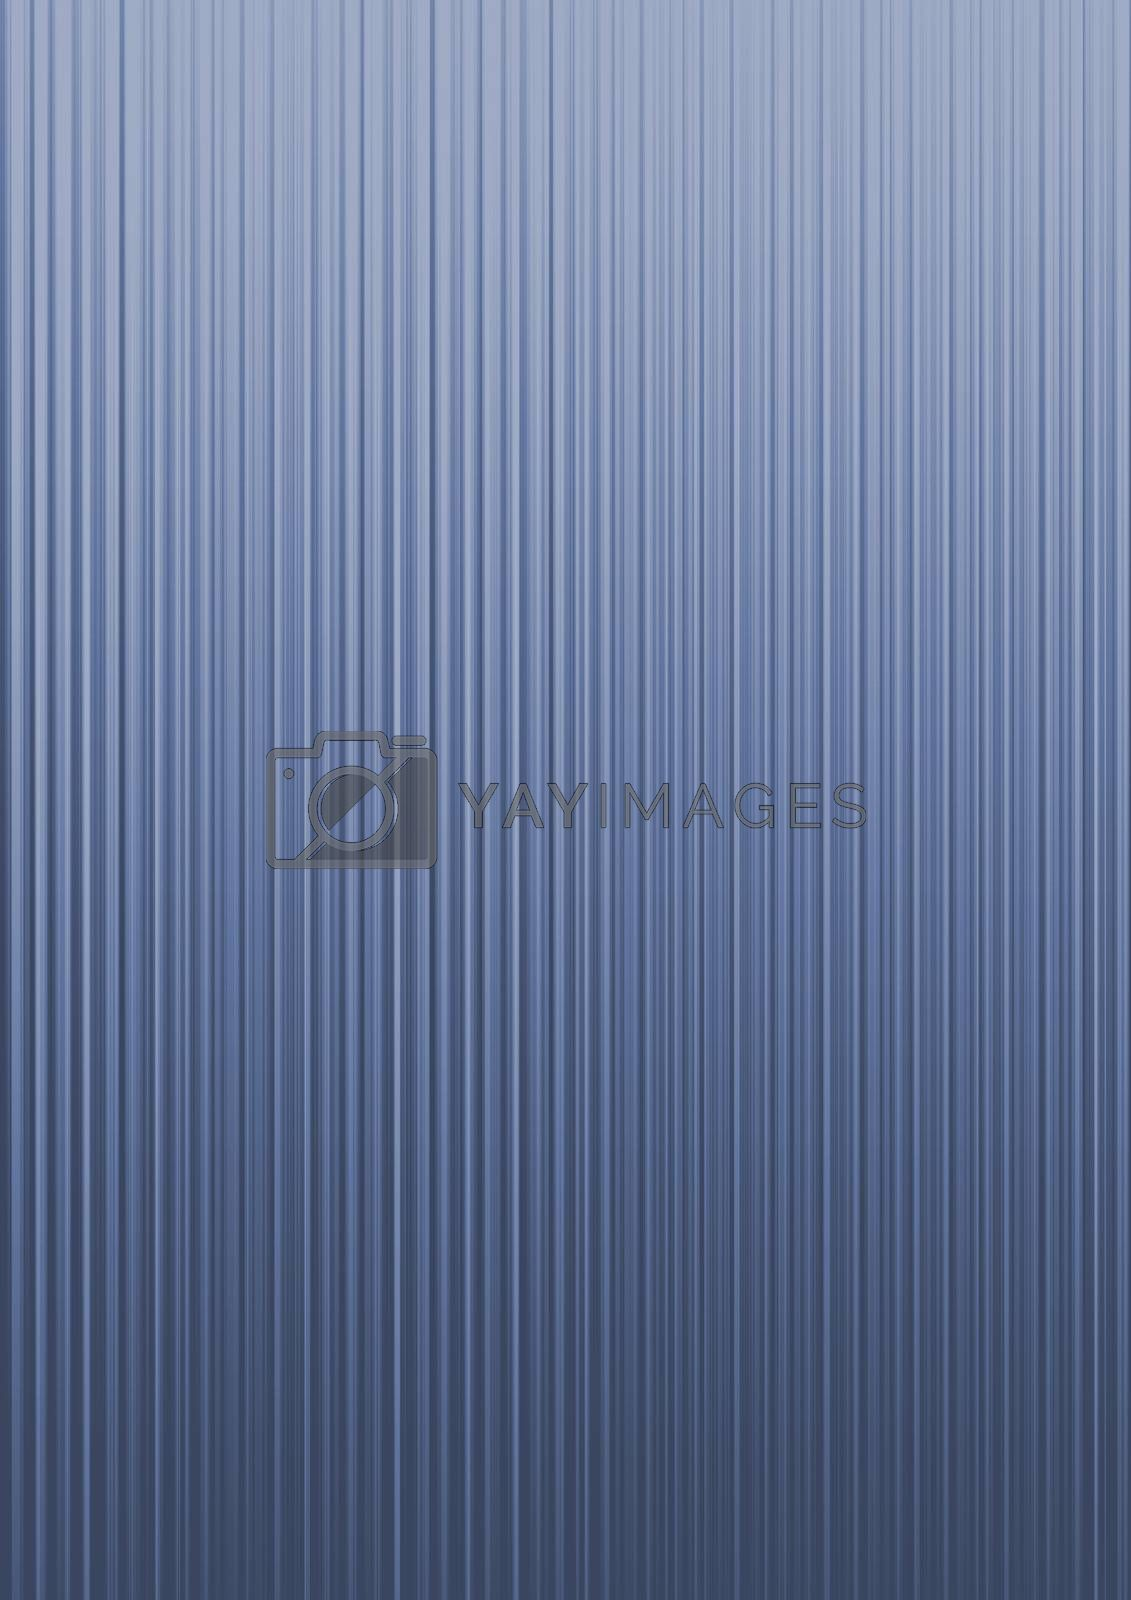 Royalty free image of Abstract blue background by richter1910